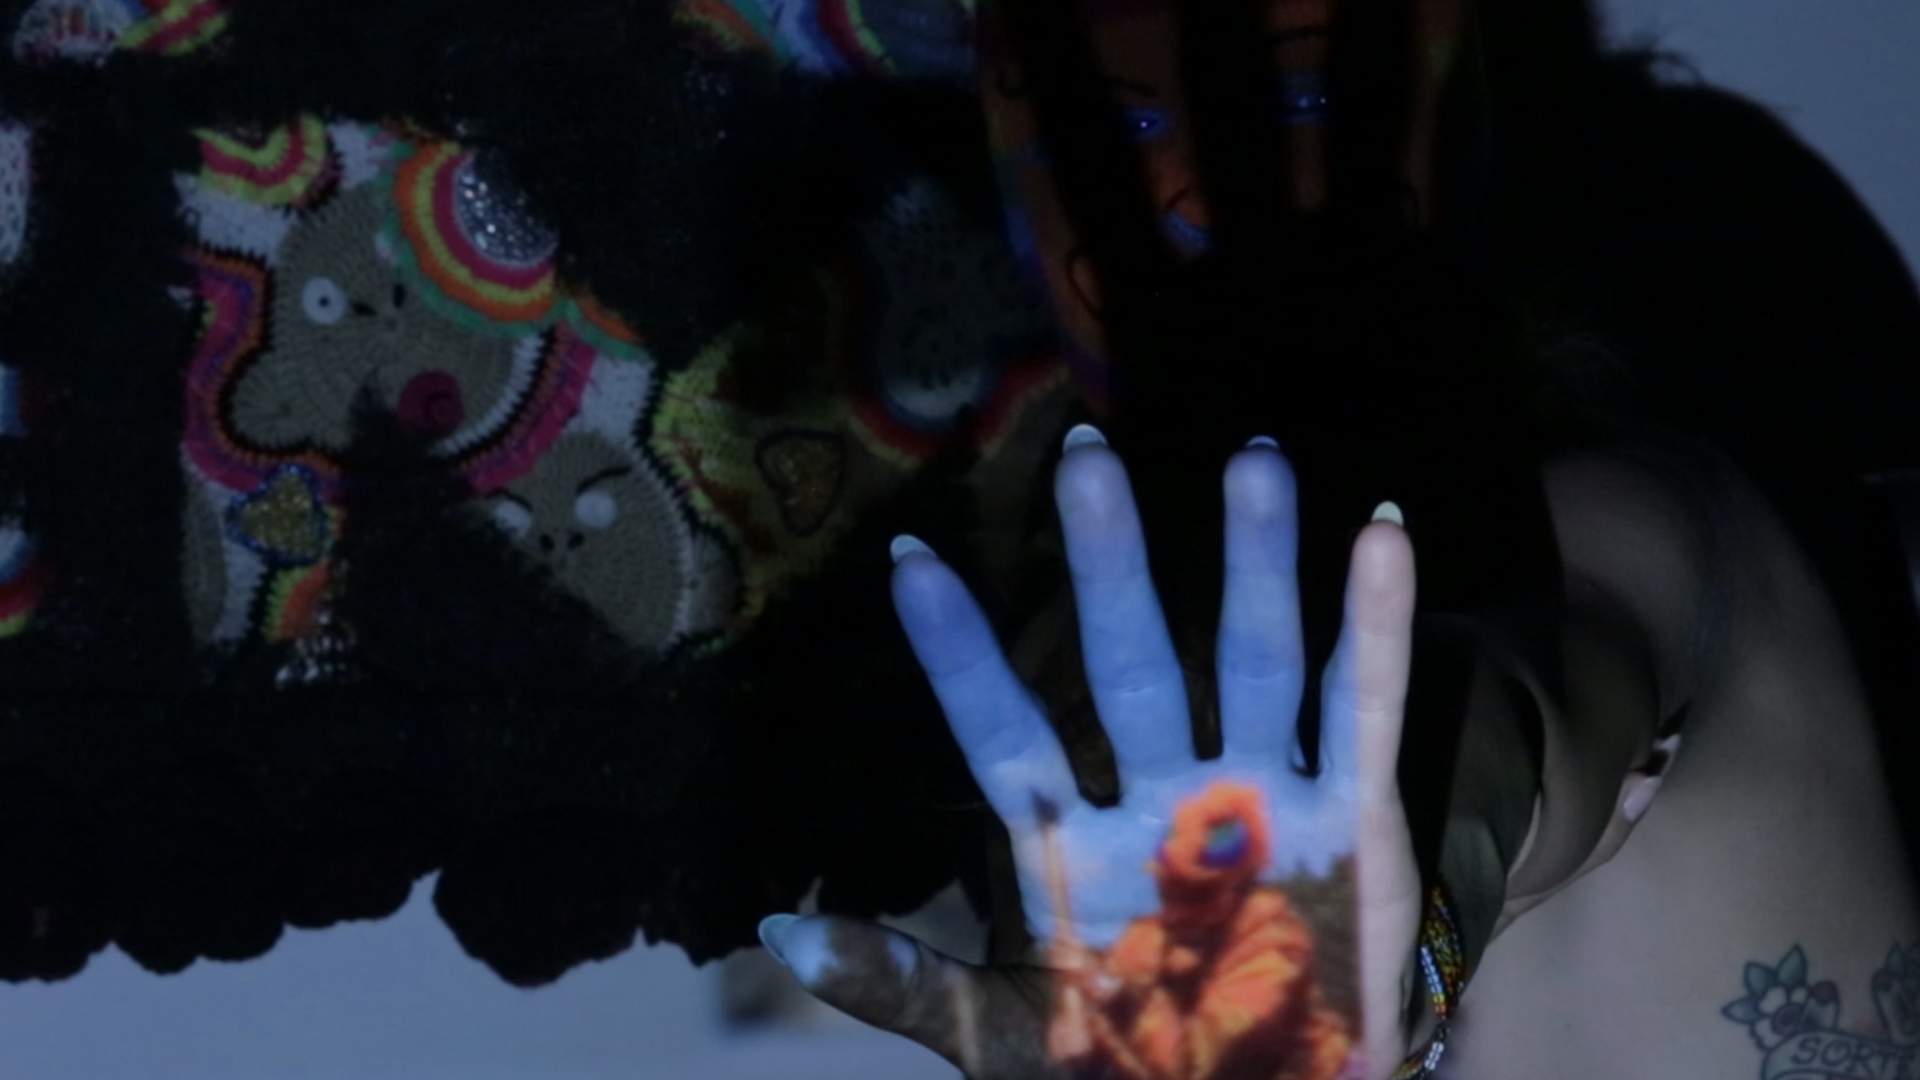 Olek_Projection on hand.jpg